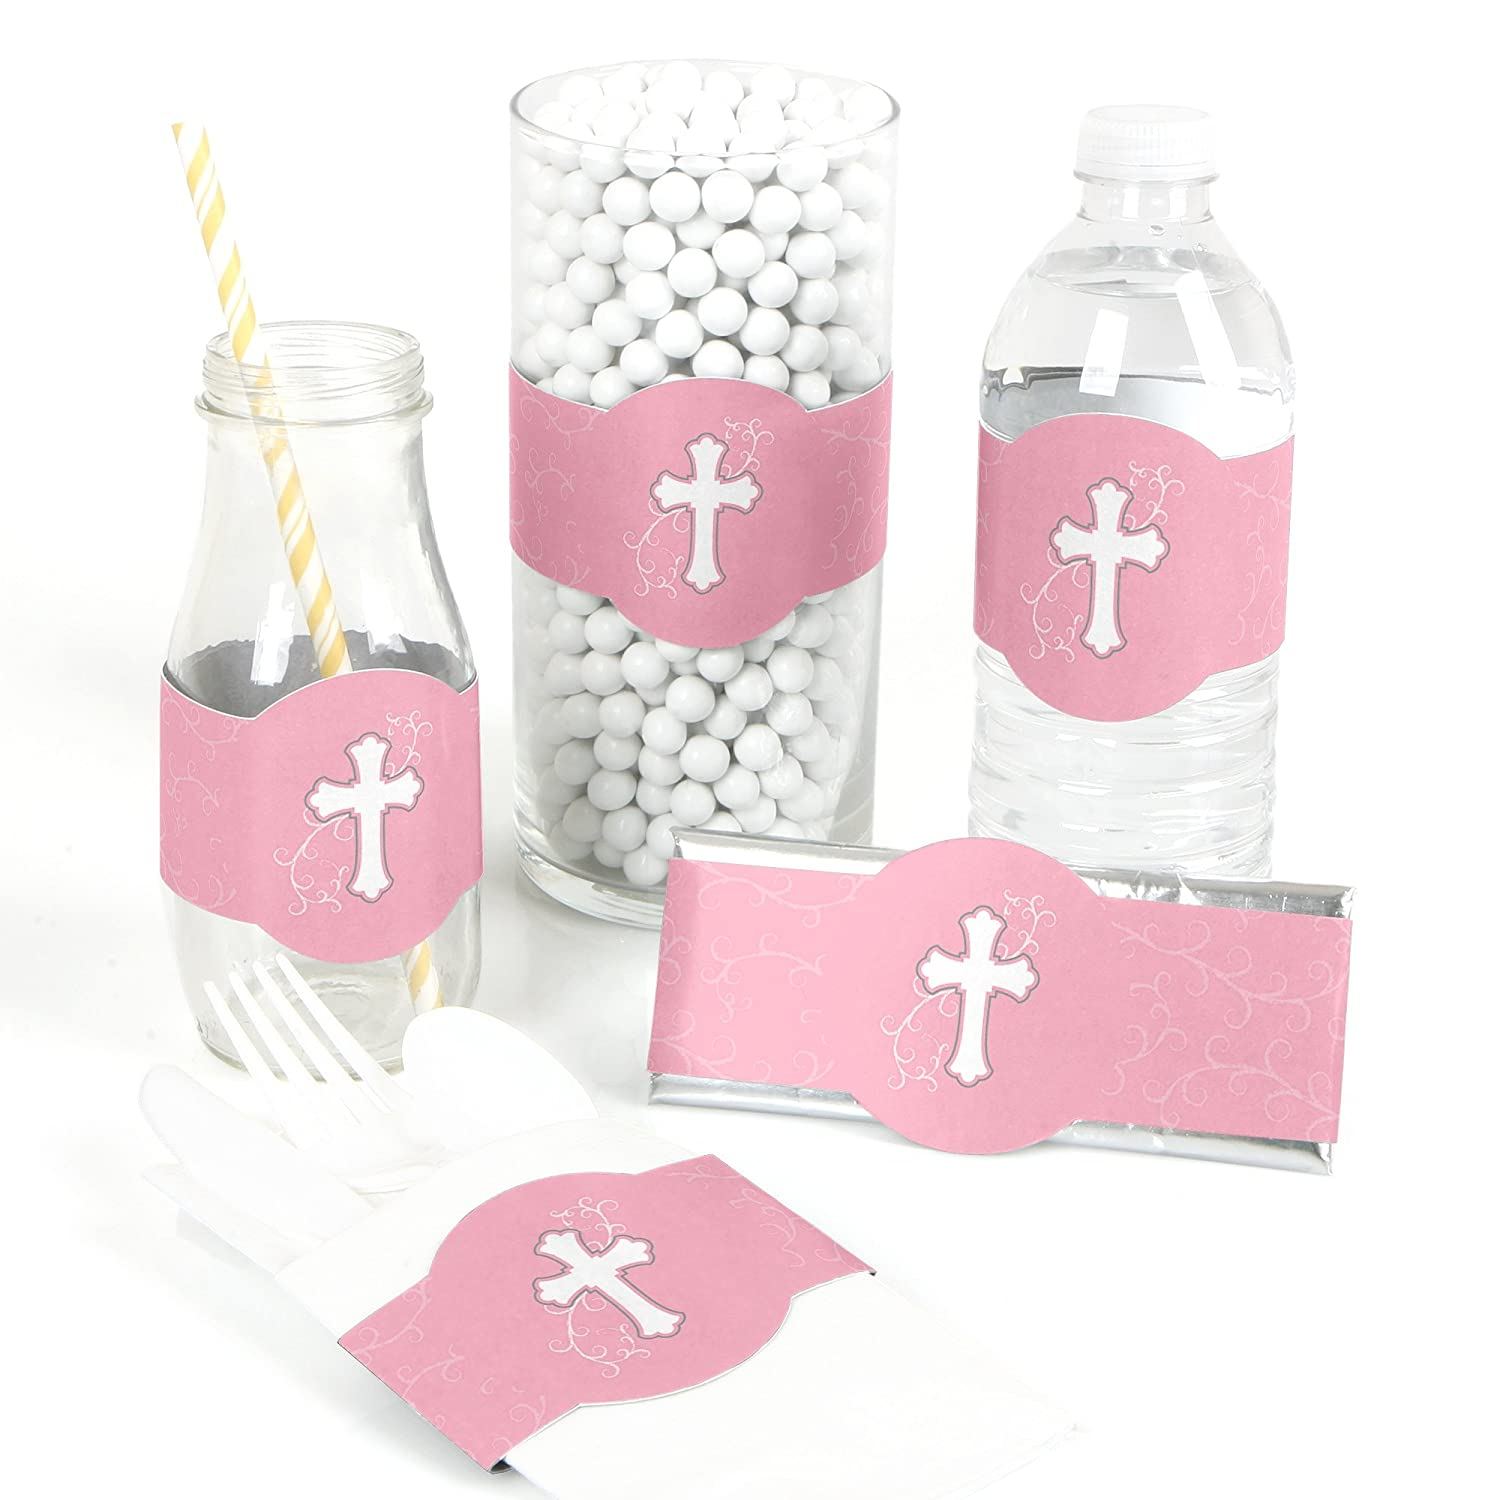 Little Miracle Girl Pink & Gray Cross   Diy Party Supplies   Baptism Party Diy Wrapper Favors & Decorations   Set Of 15 by Big Dot Of Happiness